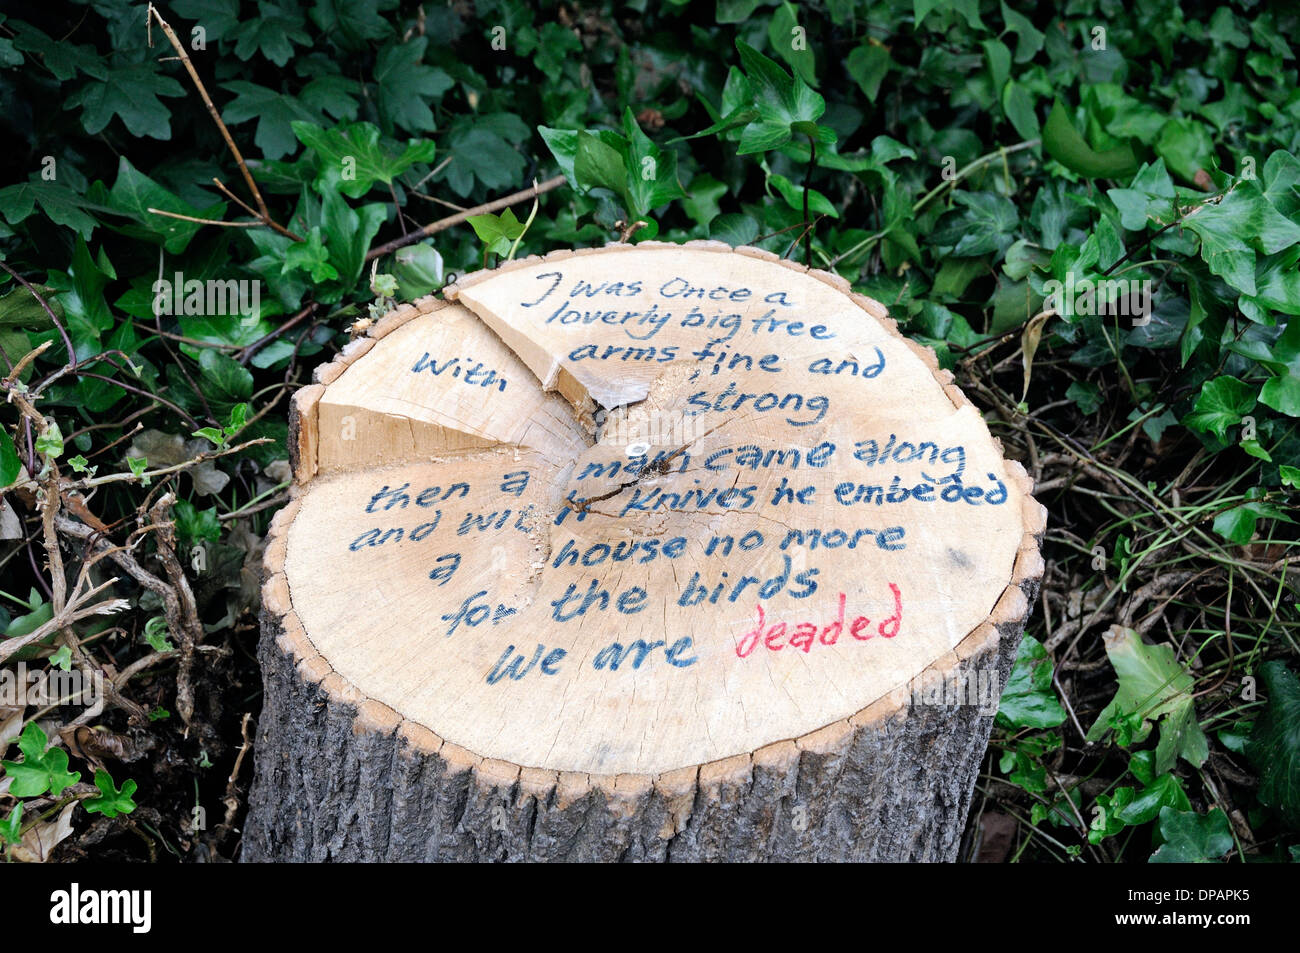 Tree stump with protest writing on regretting the loss of a native habitat, Russell Square, Bloomsbury, London England UK - Stock Image